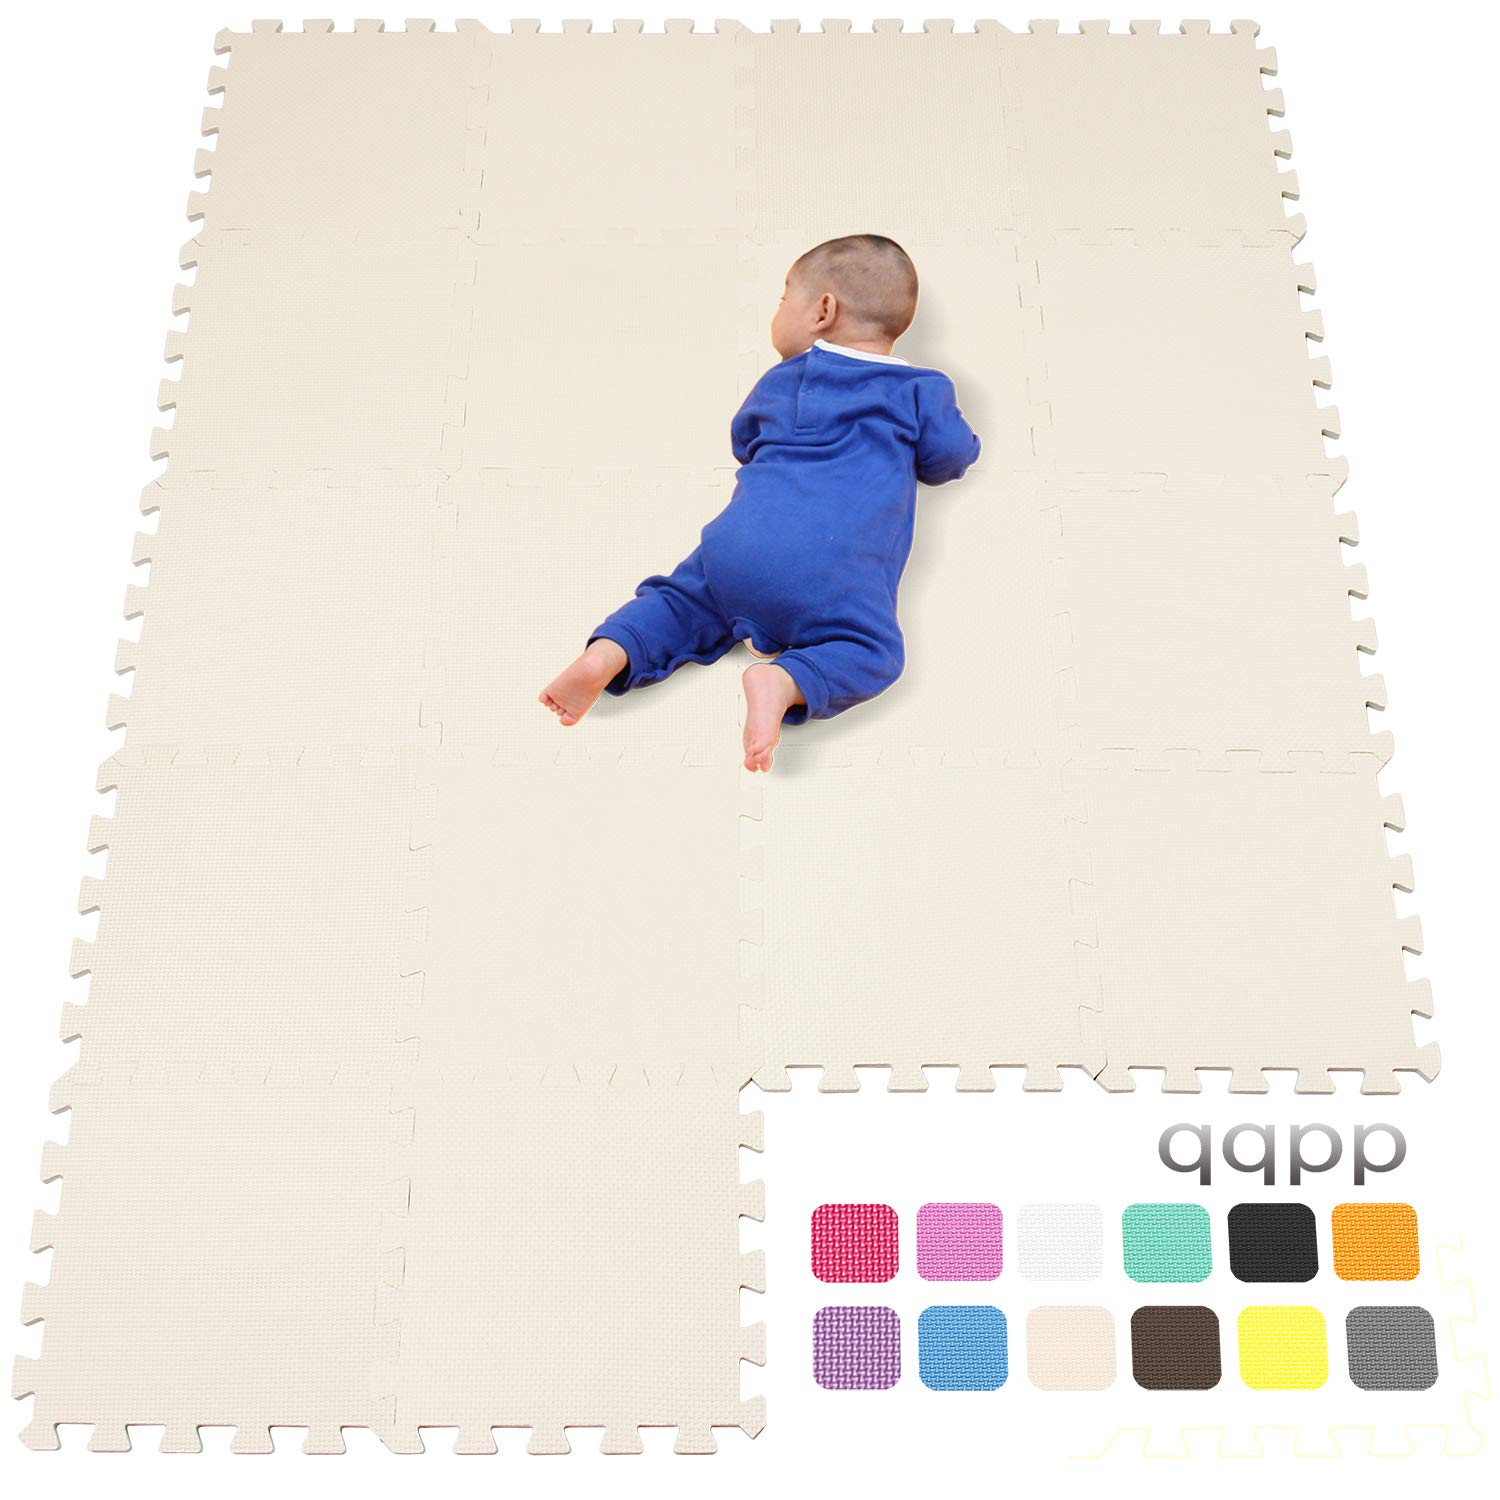 Green 18 Tiles Purple qqpp Mat,Soft EVA Foam Baby Play Mats For Floor Jigsaws Puzzle Board Portable Foldable 30*30*1cm QQC-AHKb18N White